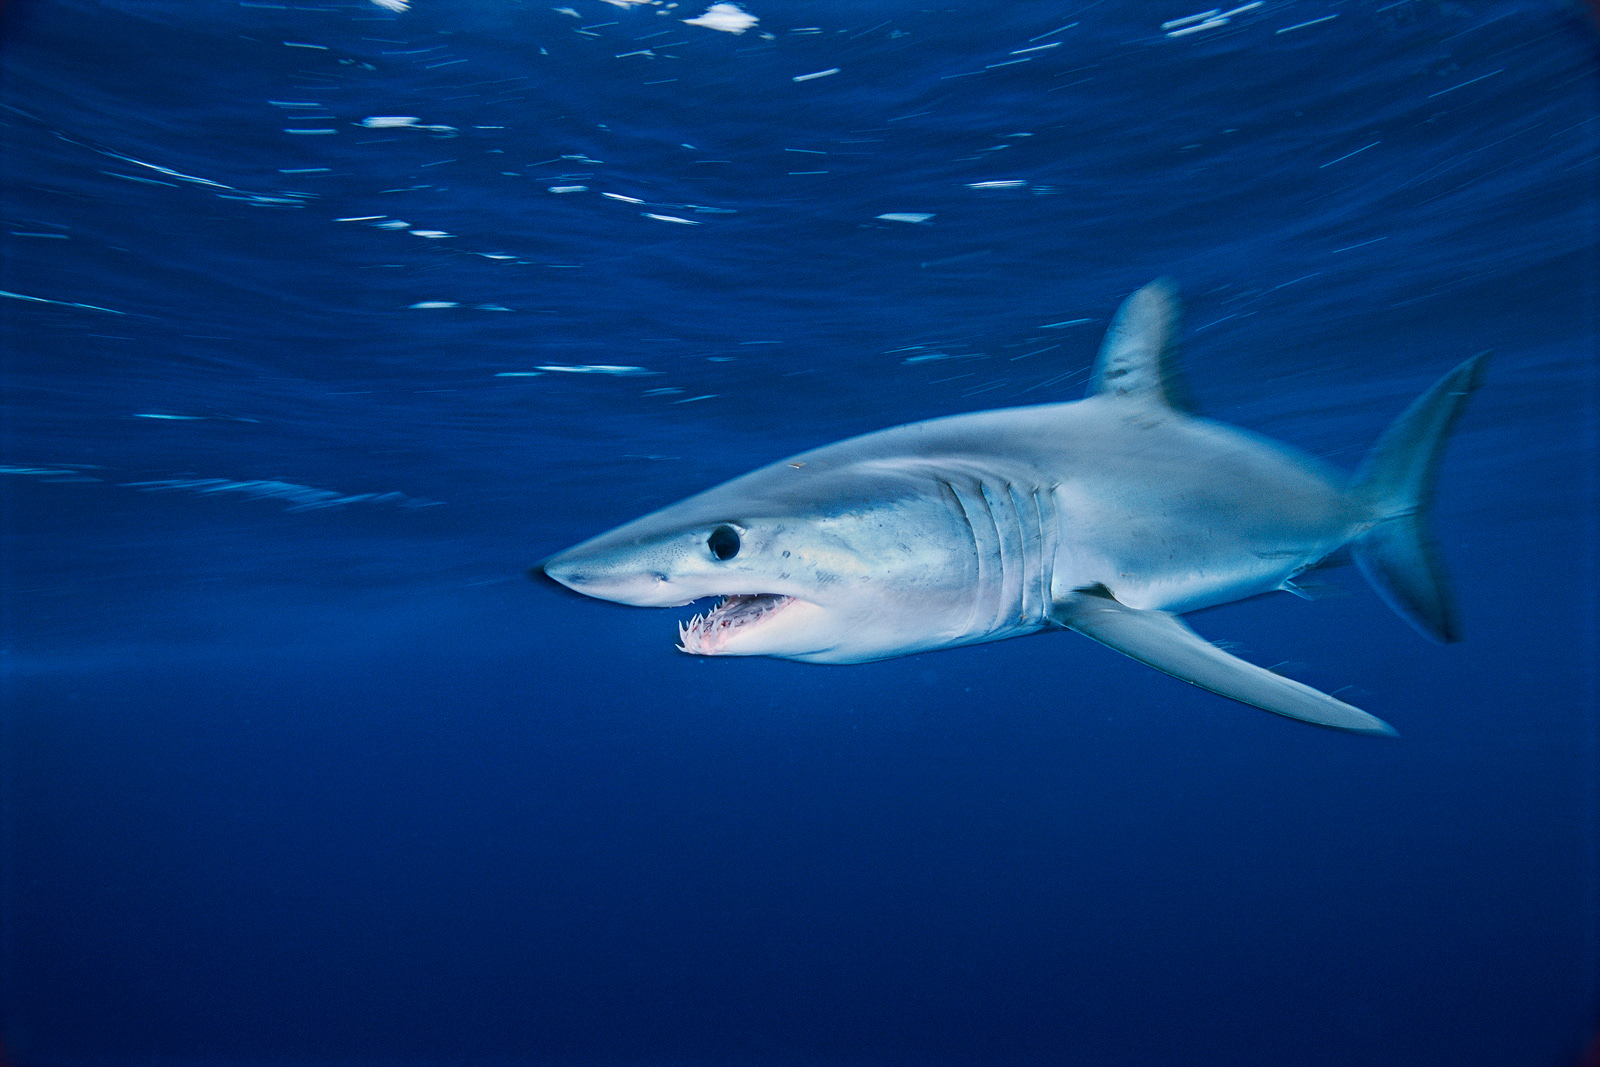 A shortfin mako glides through the waters off the coast of California.<div class='credit'><strong>Credit:</strong> A shortfin mako glides through the waters off the coast of California.</div>